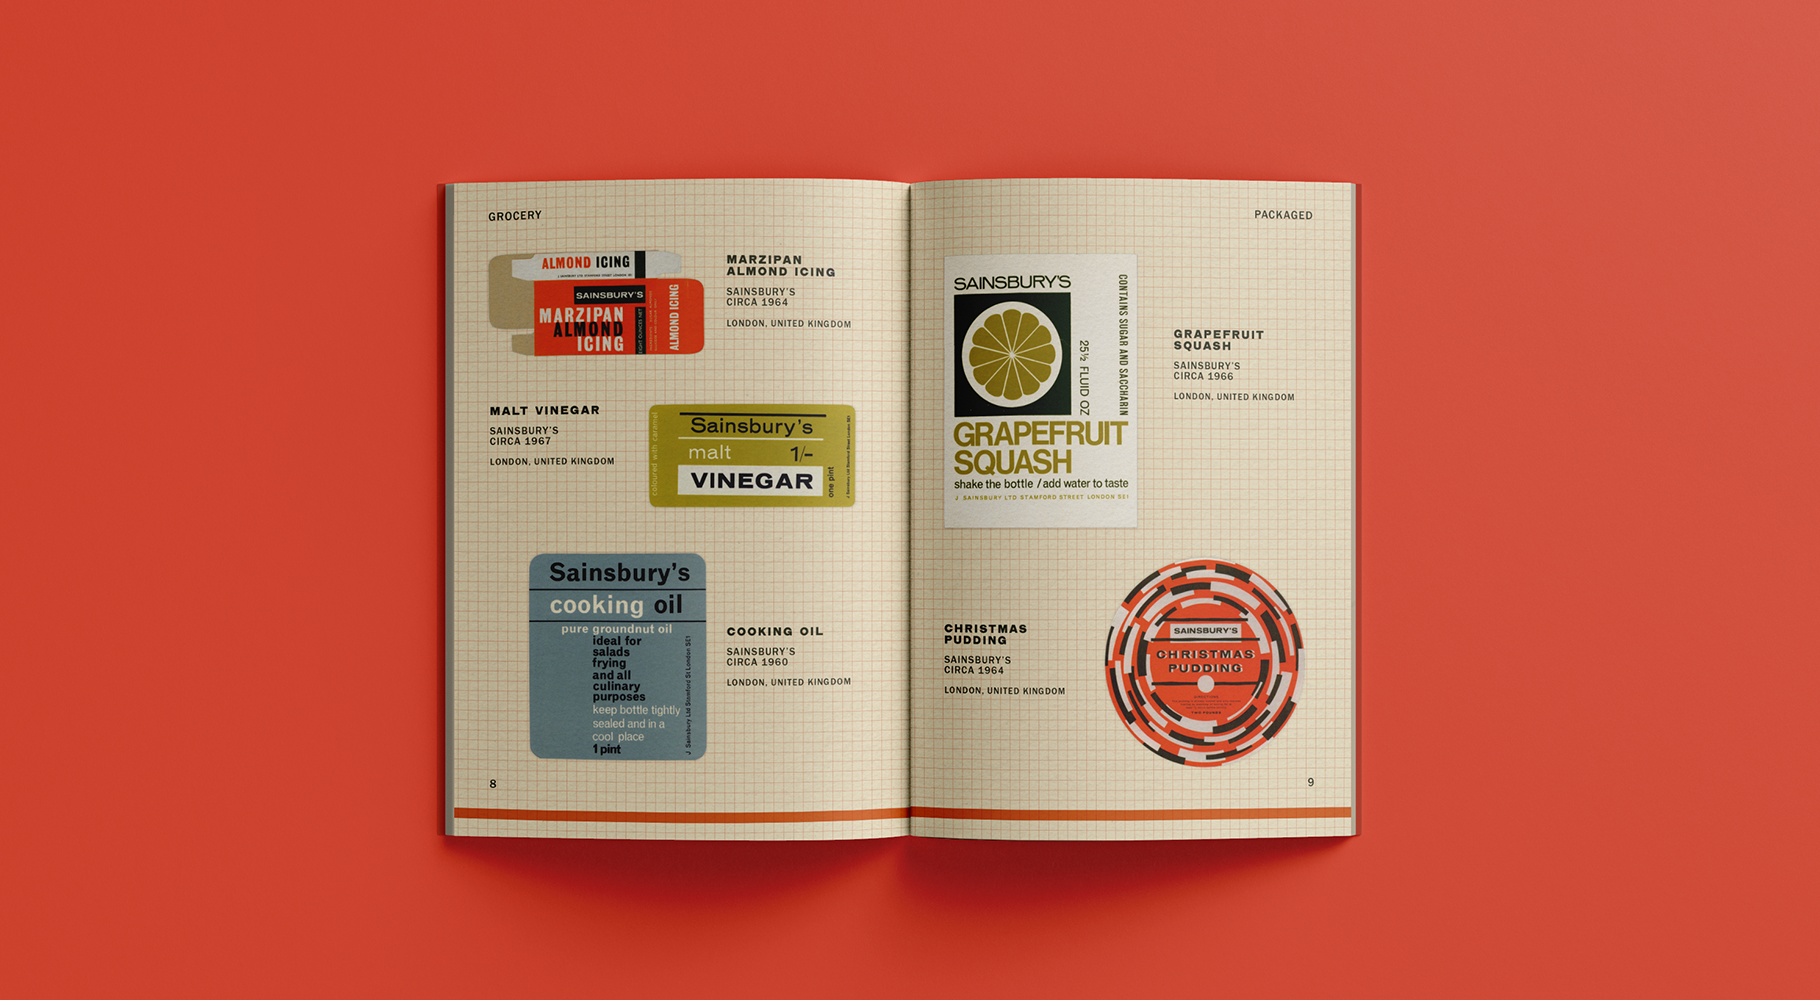 A catalogue spread featuring various grocery packaging designs.